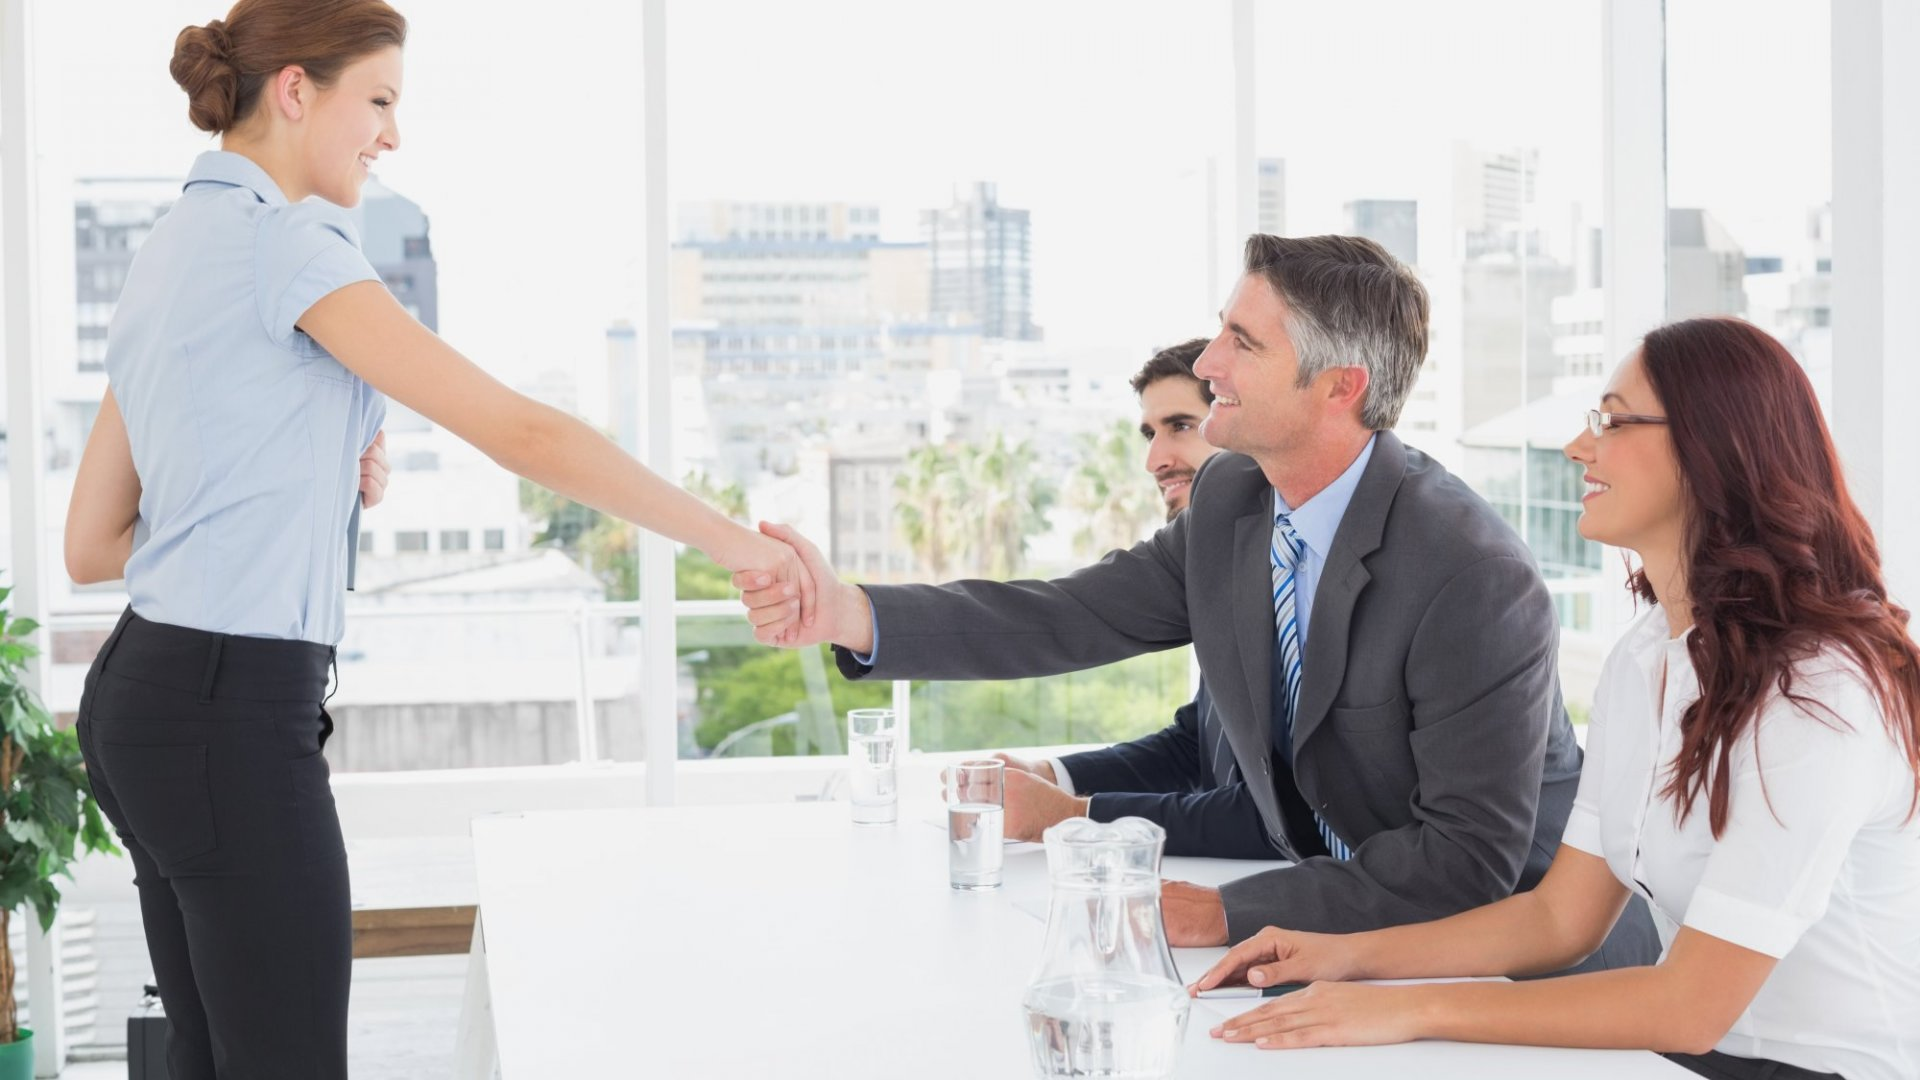 3 Rarely-Asked Interview Questions Every Job Seeker Should Ask